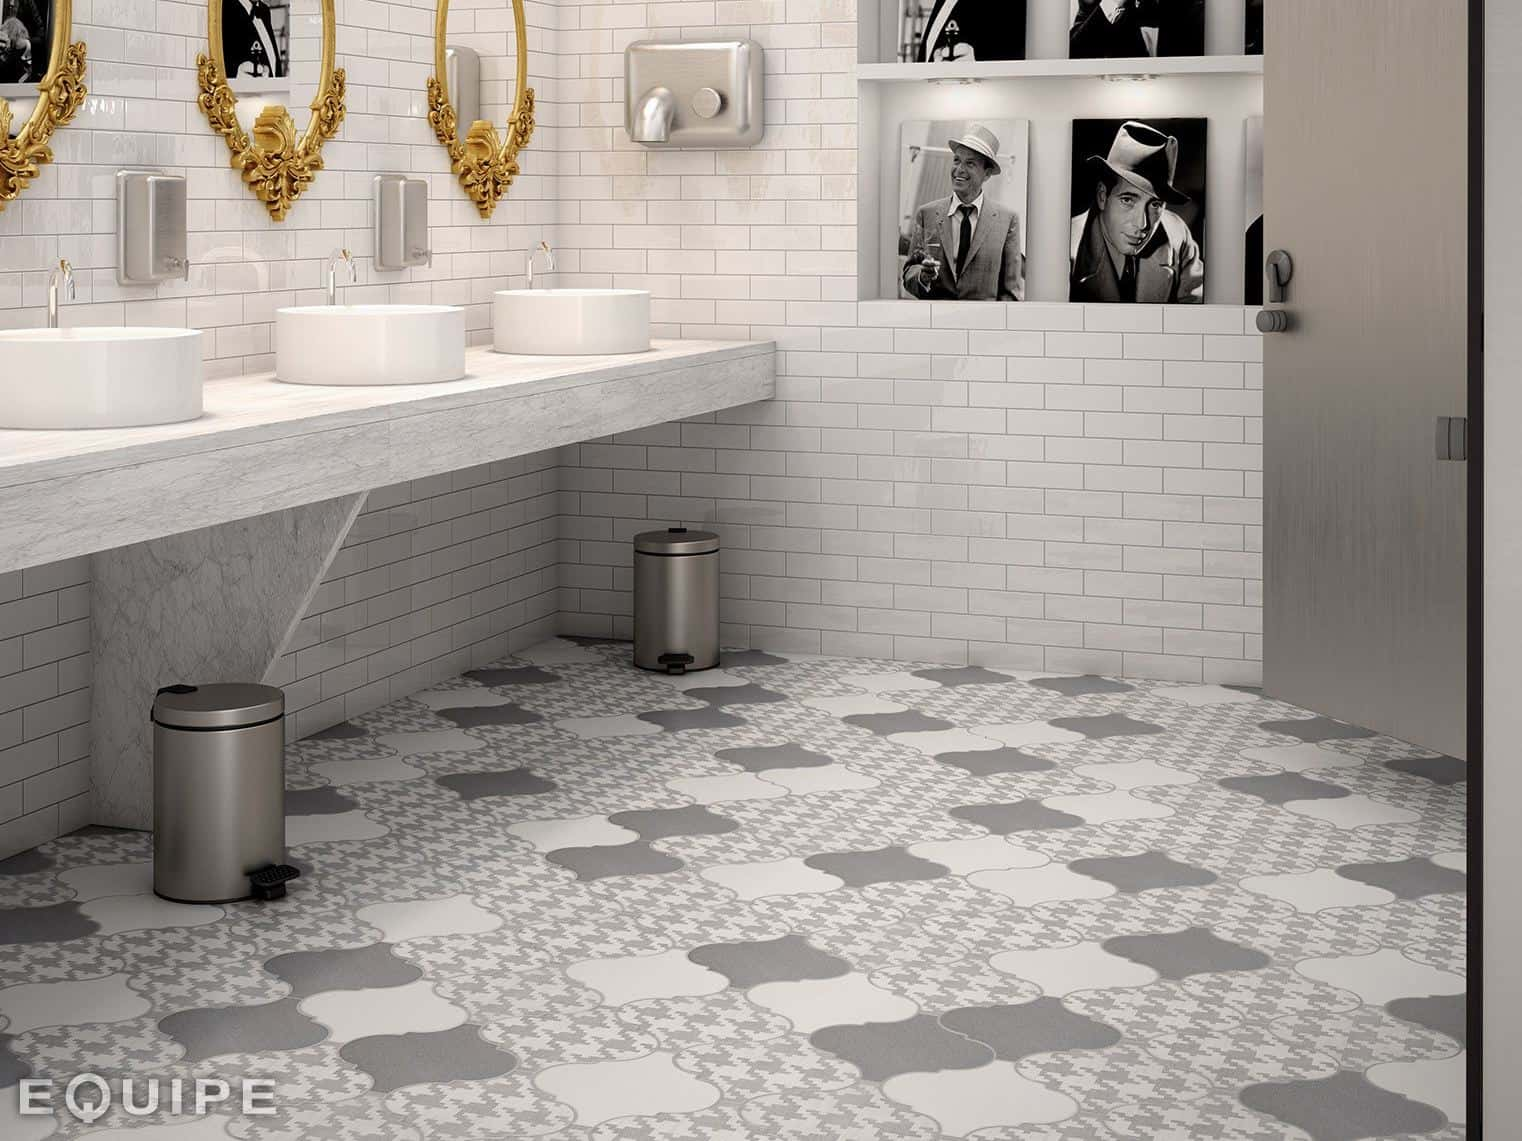 21 arabesque tile ideas for floor wall and backsplash view in gallery arabesque tile floor bathroom grey white 8g dailygadgetfo Gallery